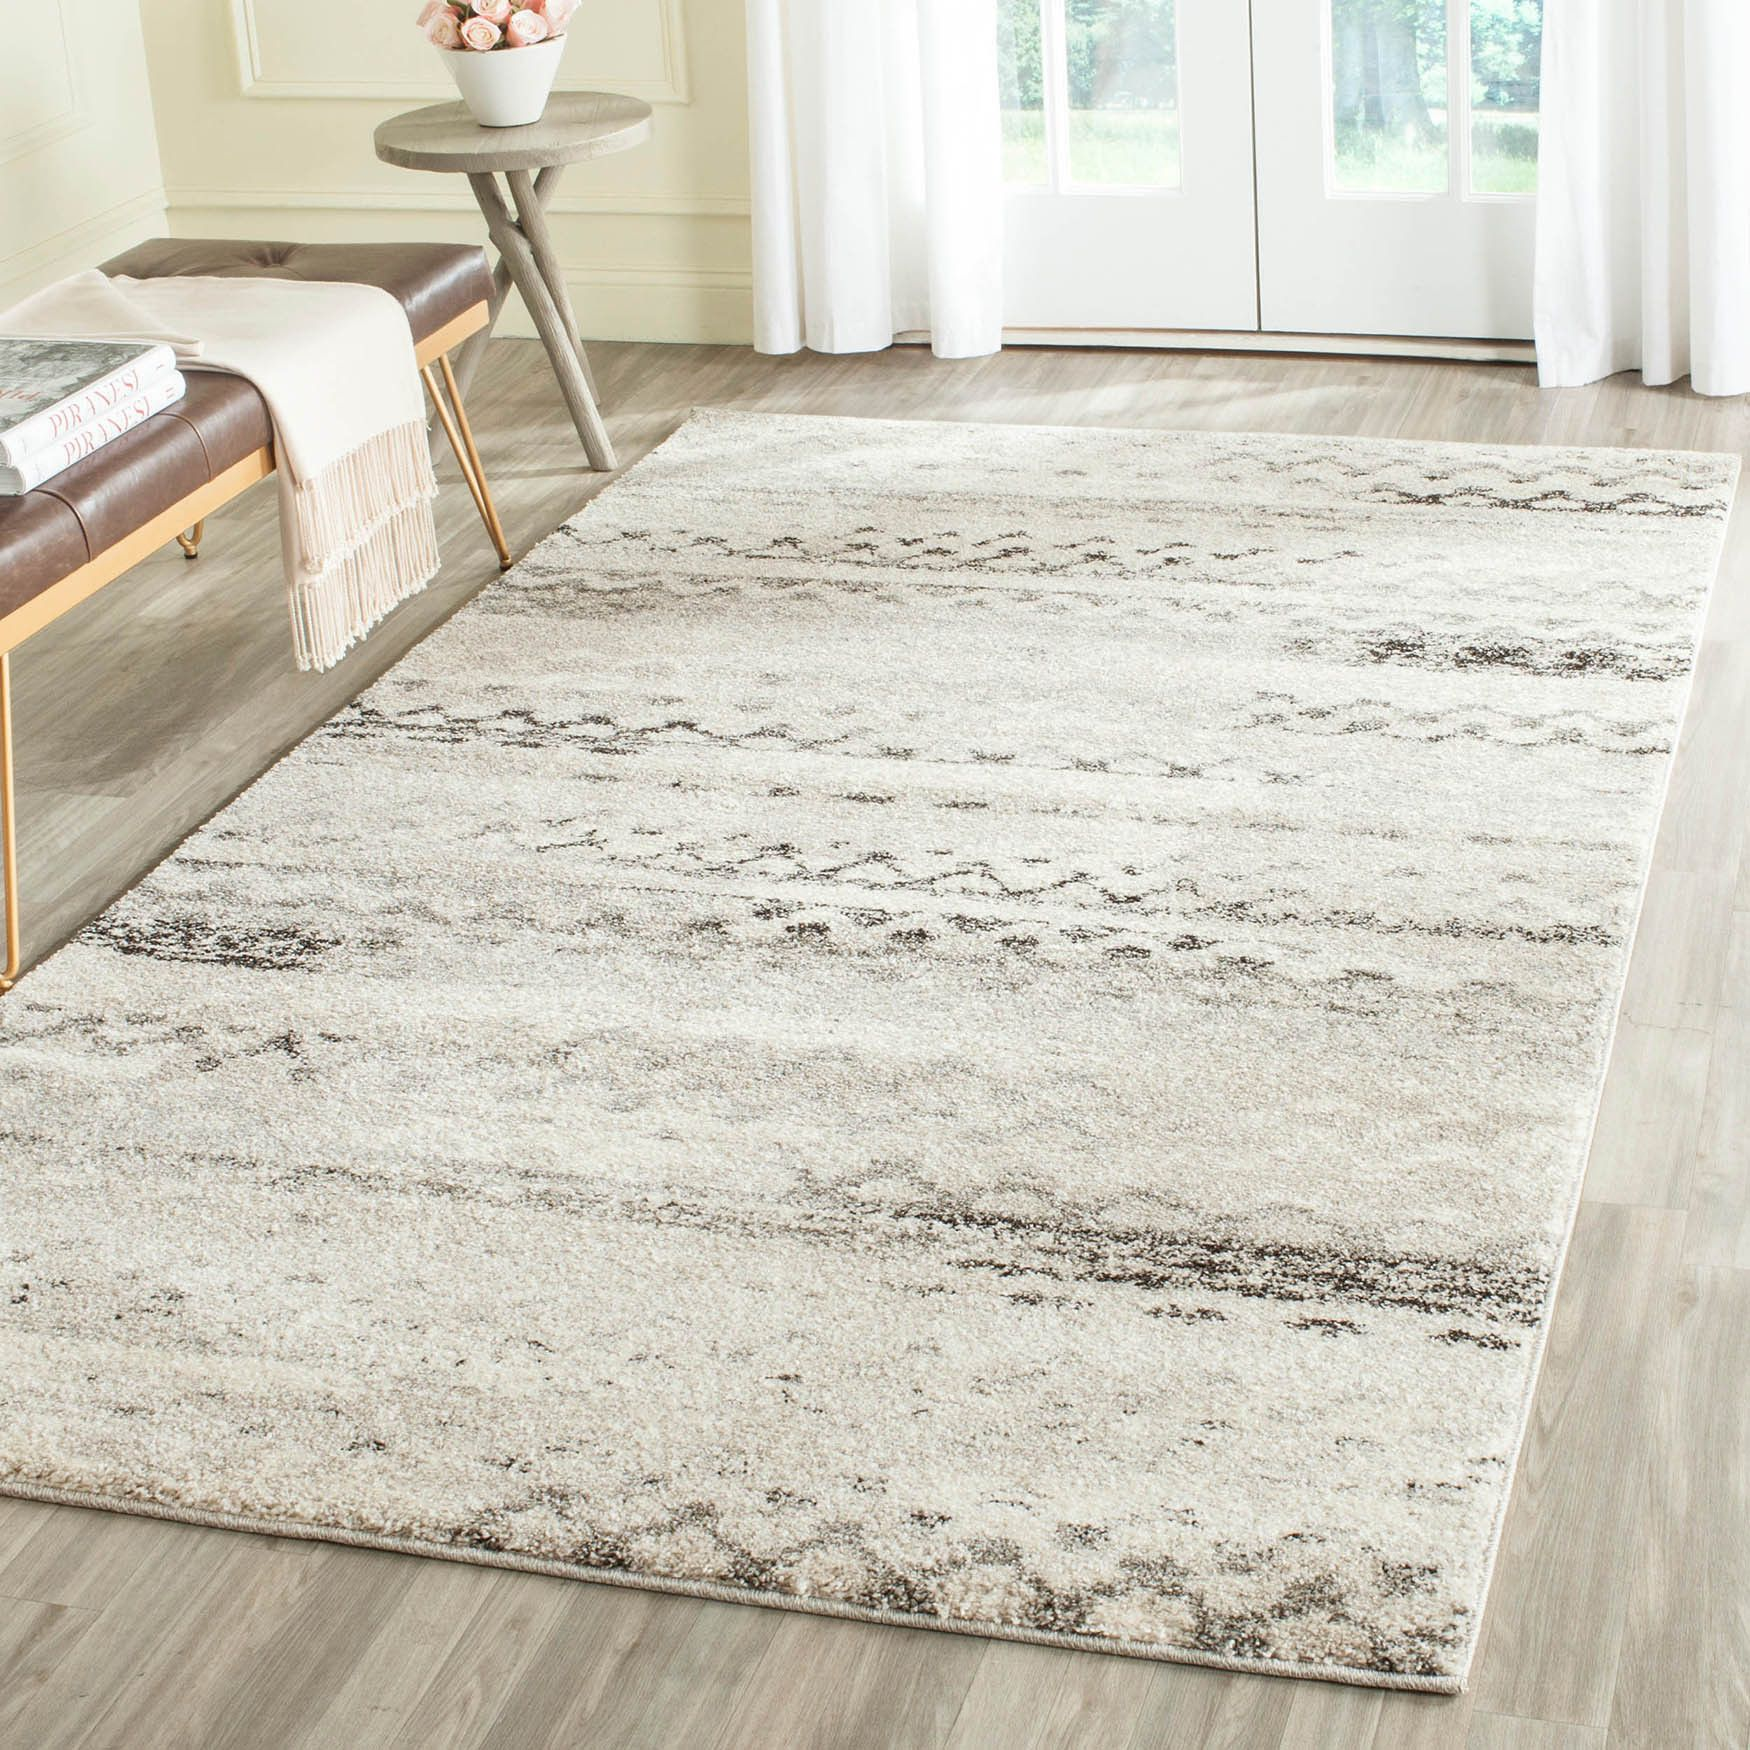 Safavieh Retro Modern Abstract Cream Grey Distressed Area Rug 6